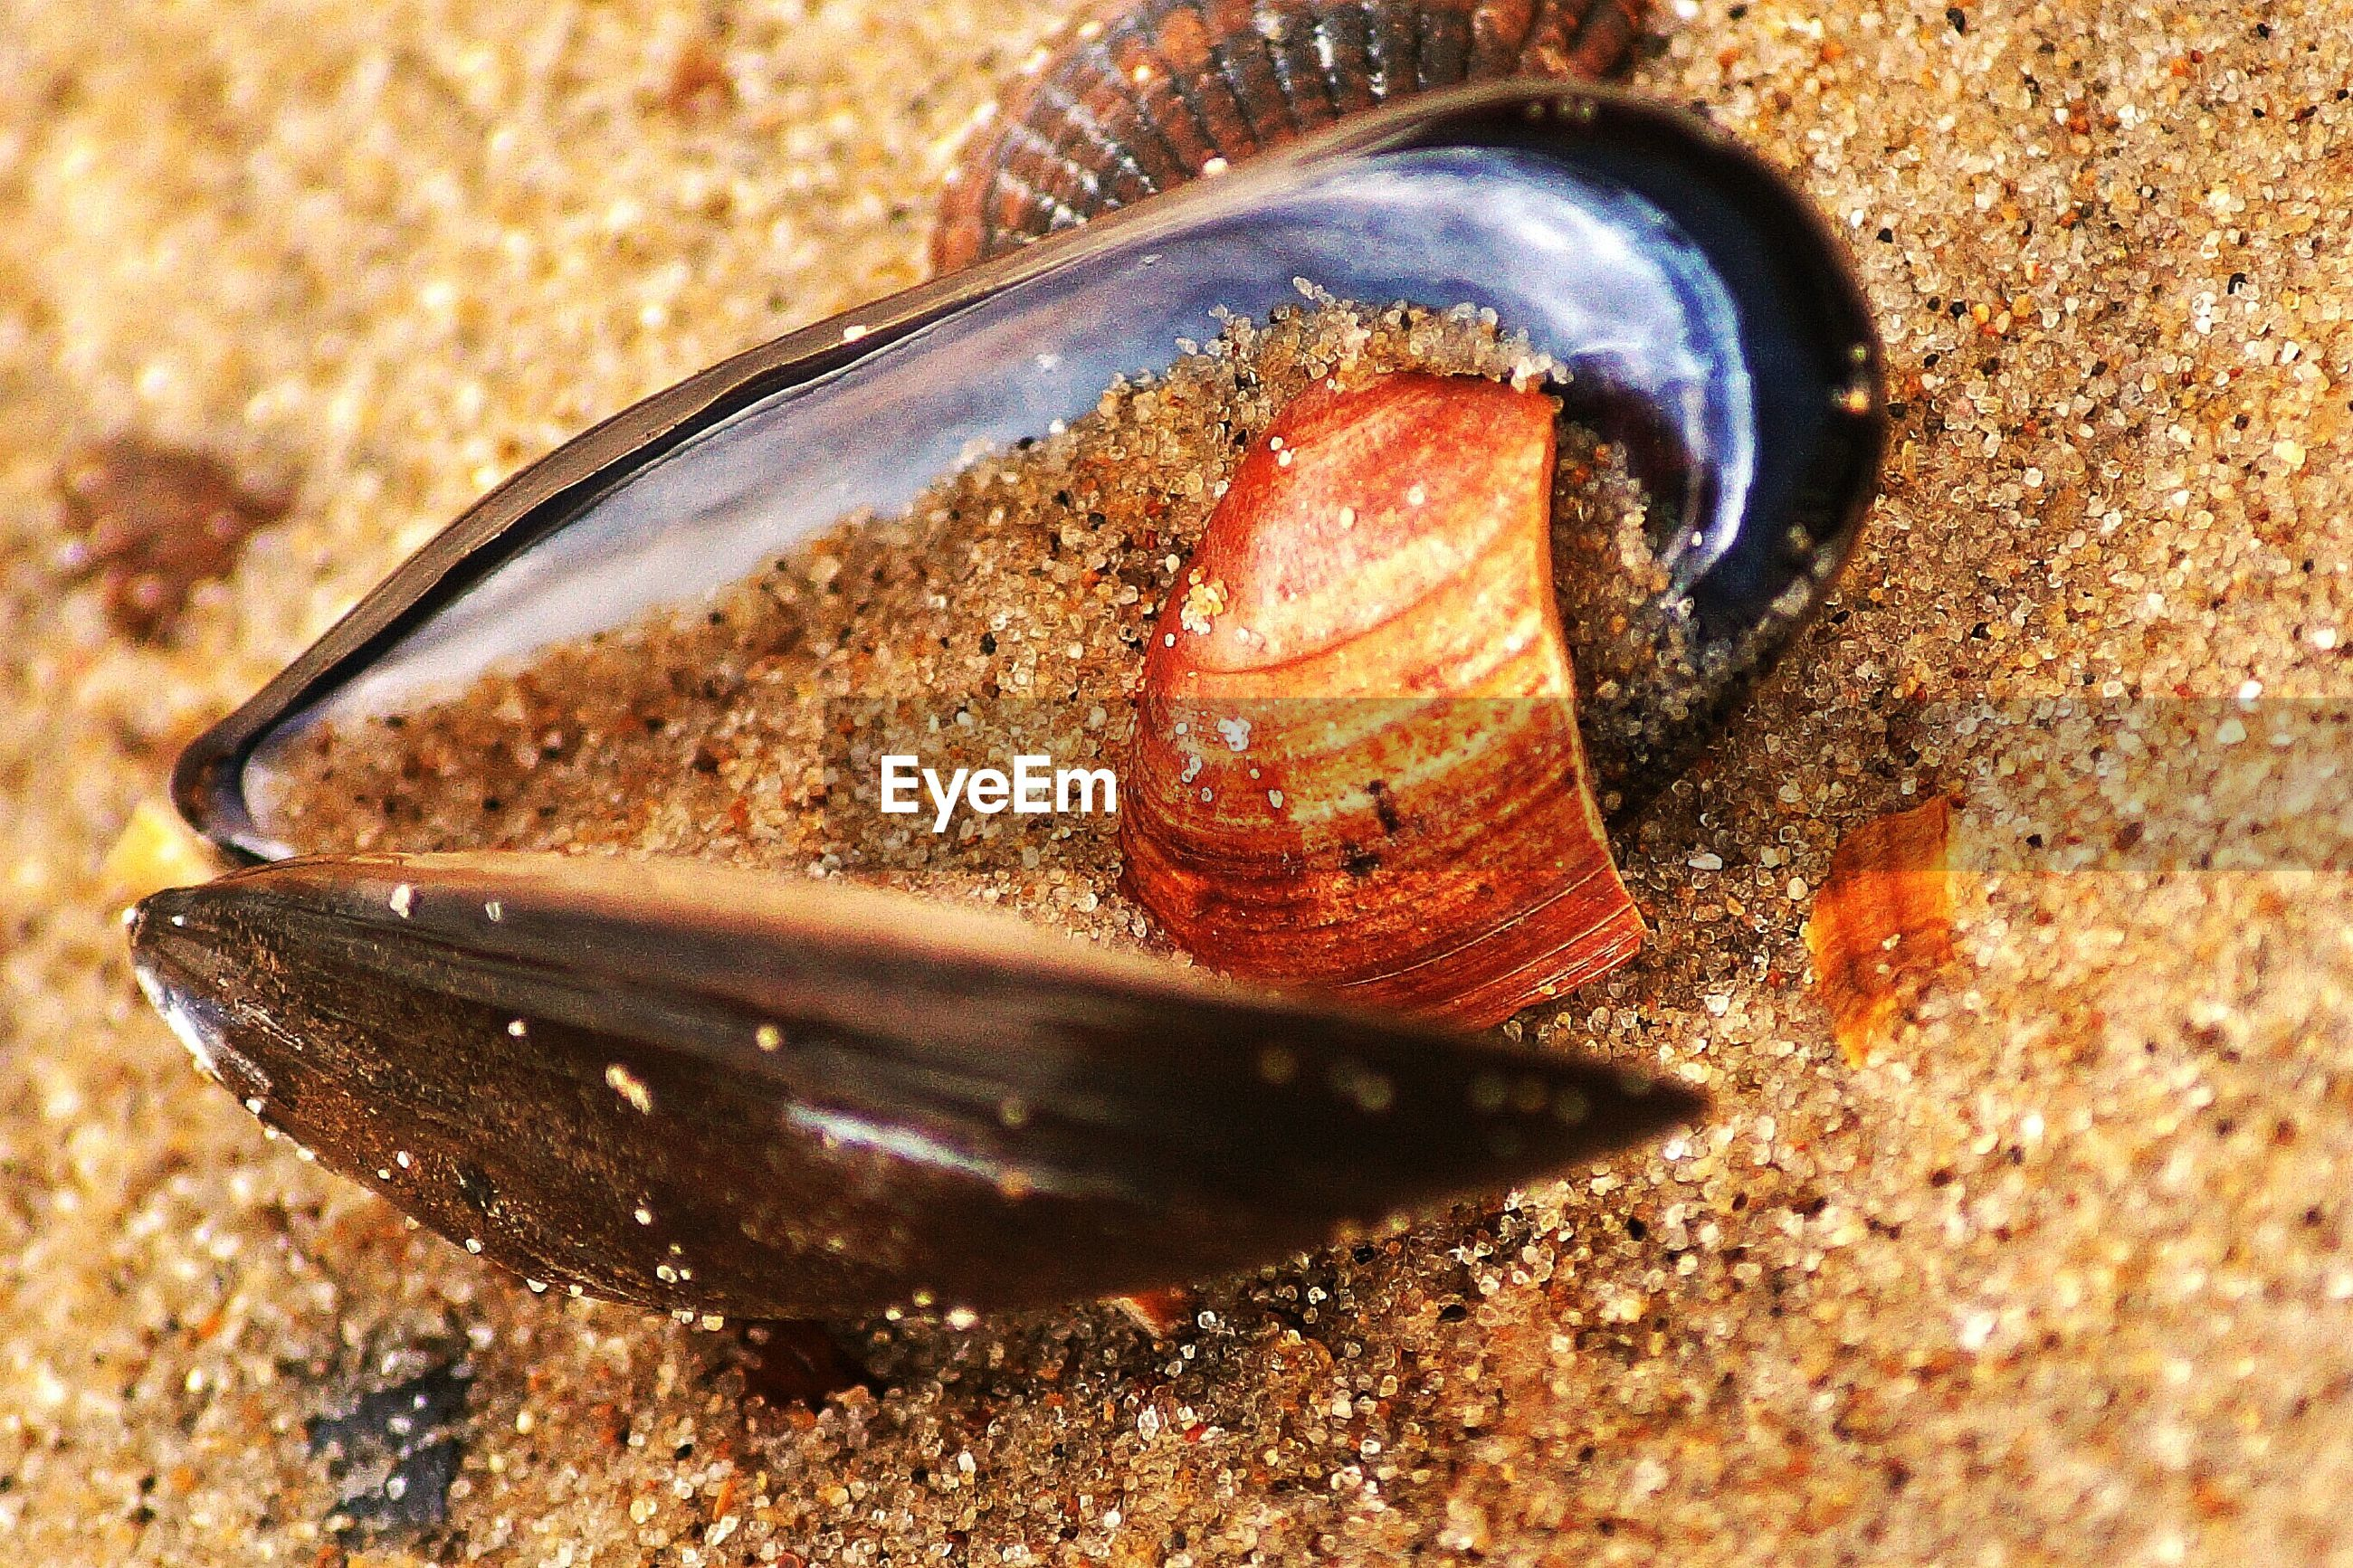 close-up, animal shell, food and drink, snail, one animal, still life, animal themes, shell, focus on foreground, animals in the wild, high angle view, seashell, no people, food, selective focus, single object, sand, day, wildlife, dead animal